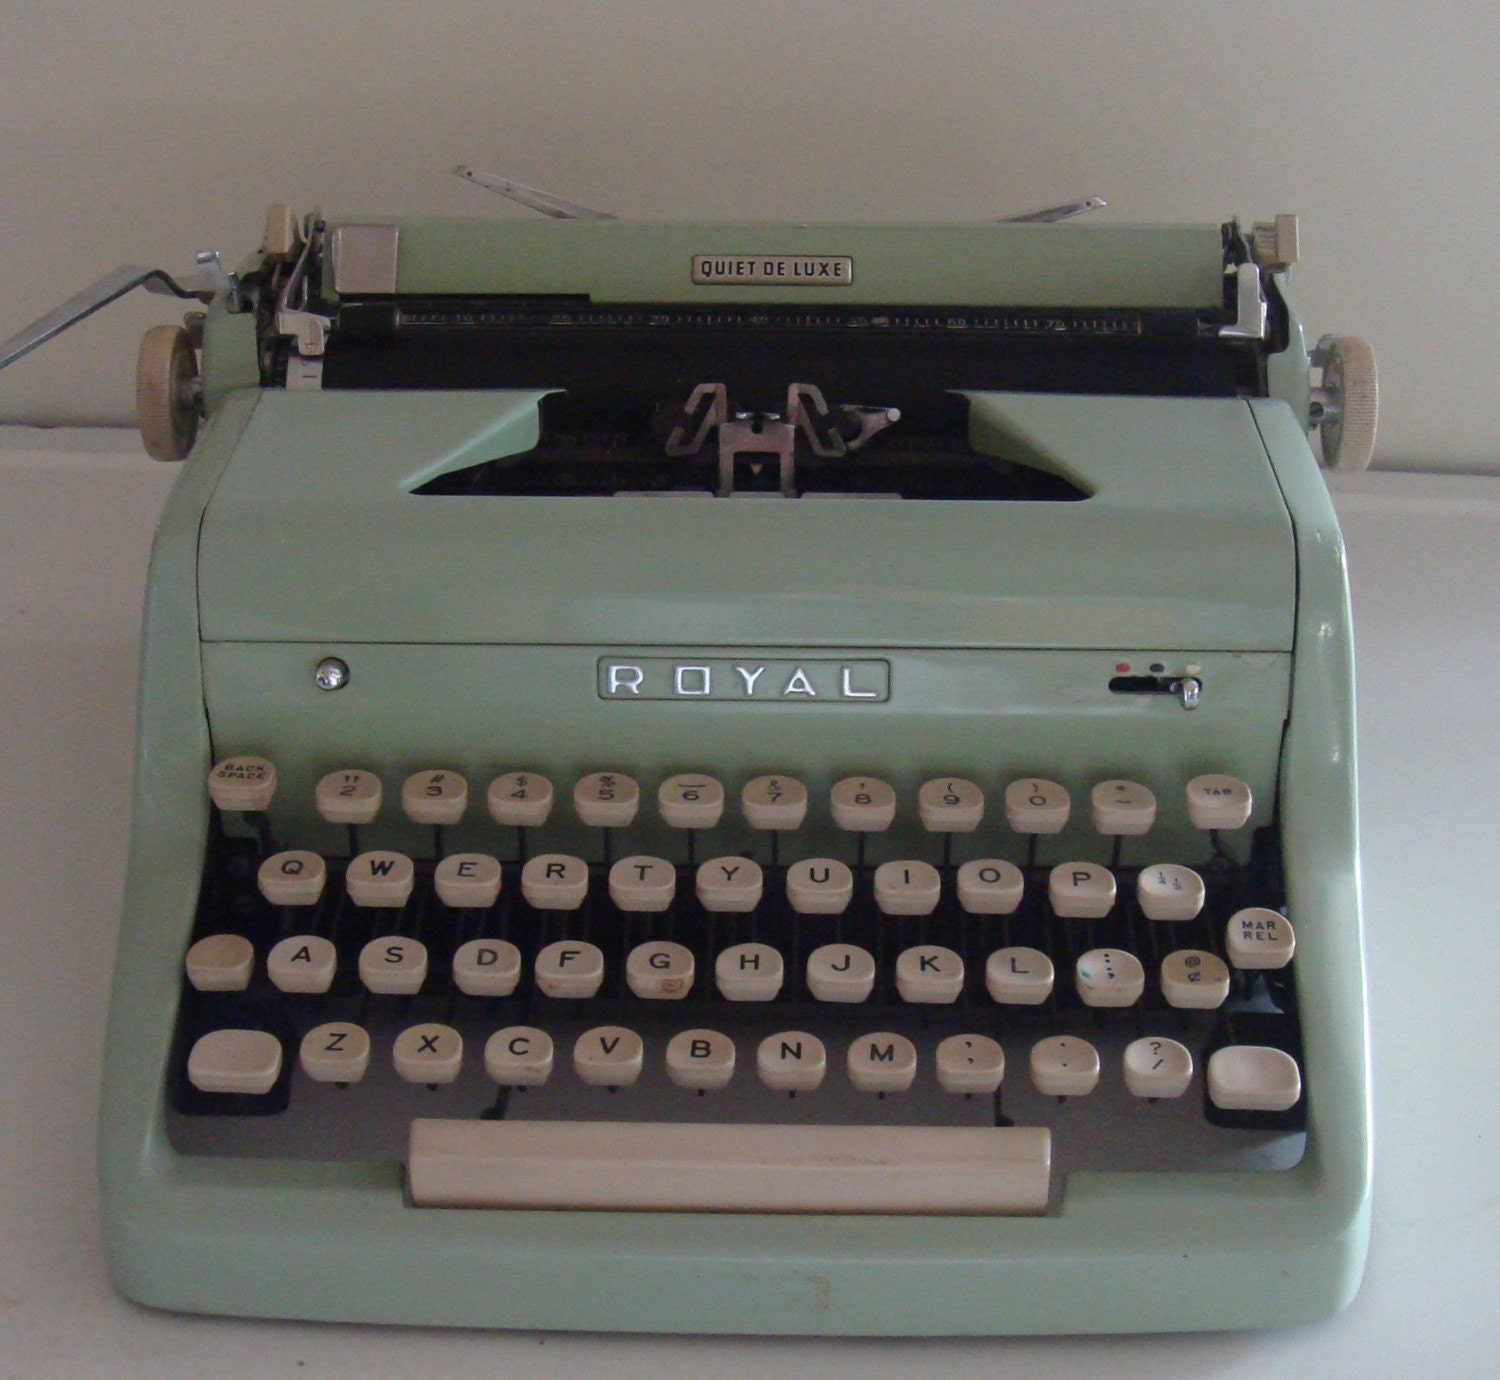 RARE 1950s GREEN ROYAL QUIET DE LUXE TYPEWRITER